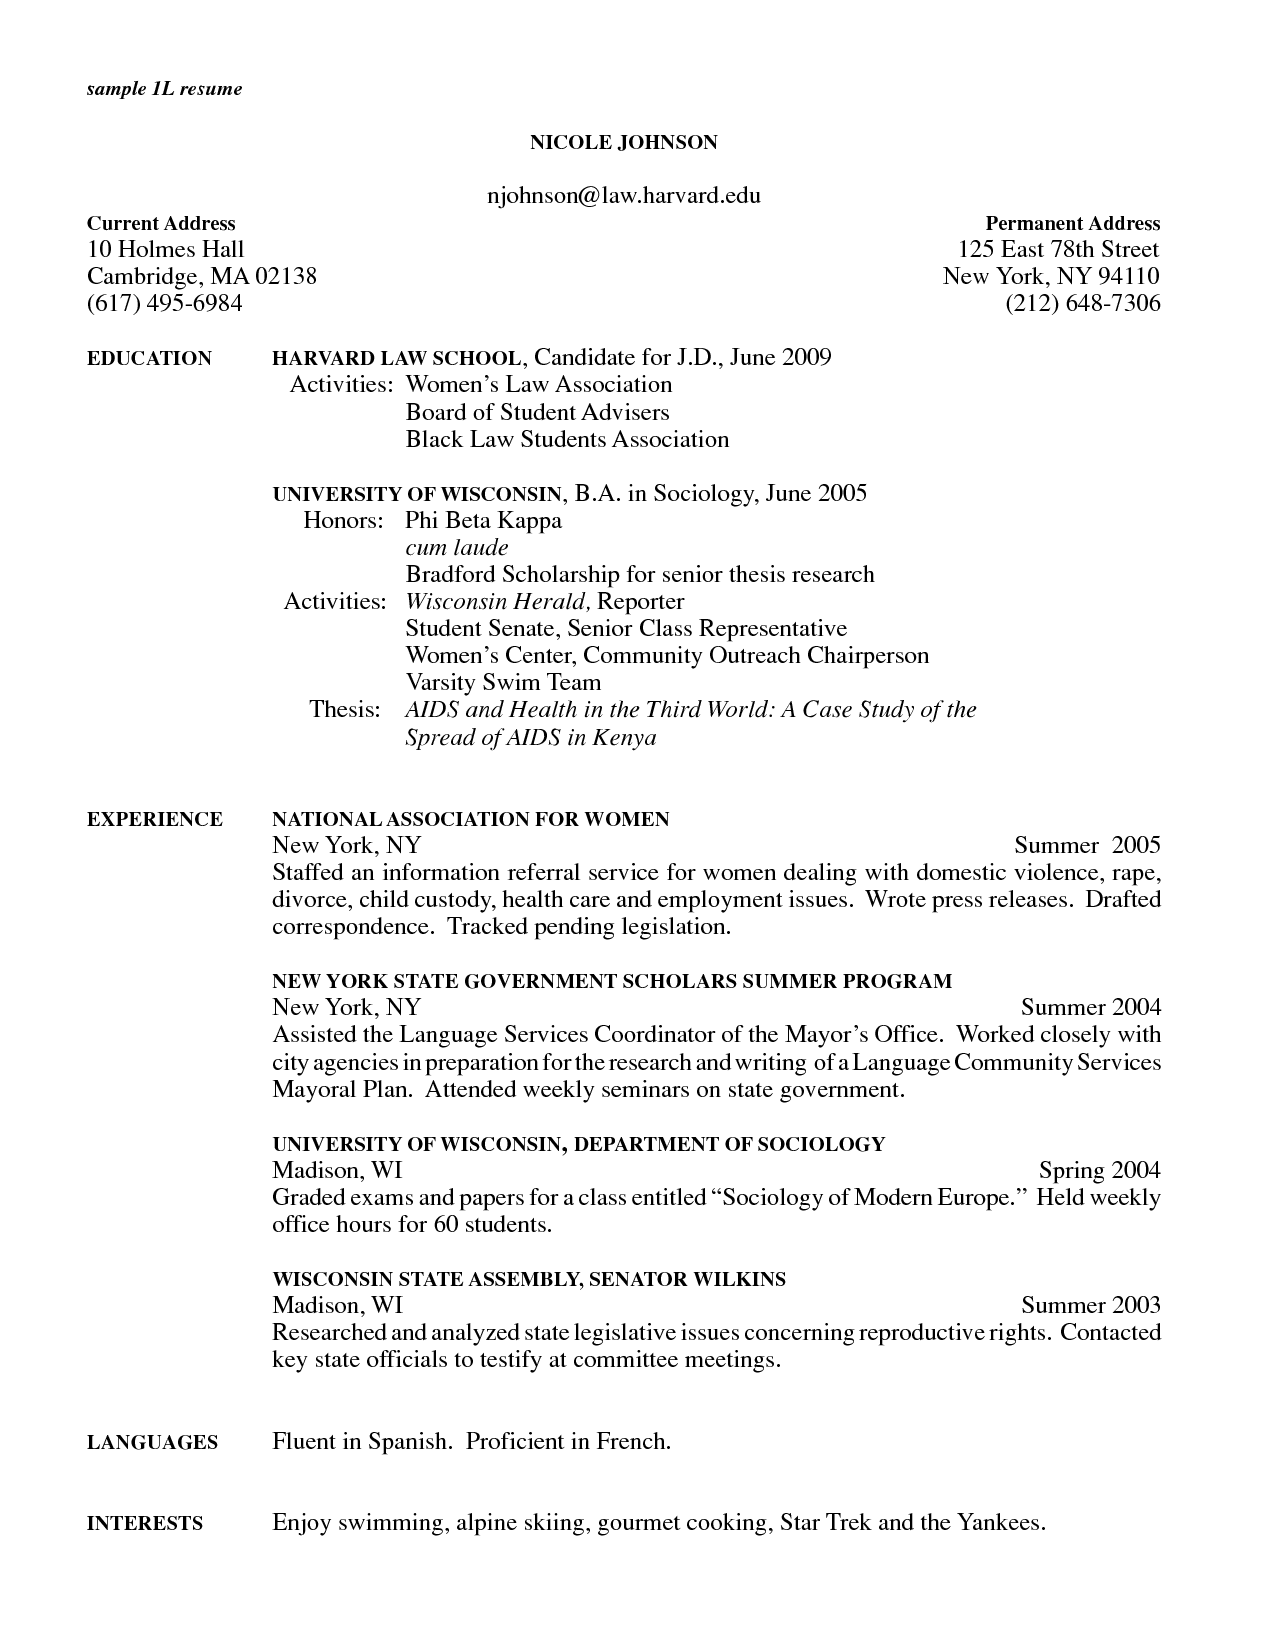 Sample Law School Resume Resume For Law Graduate  Opinion Of Experts  Baseball